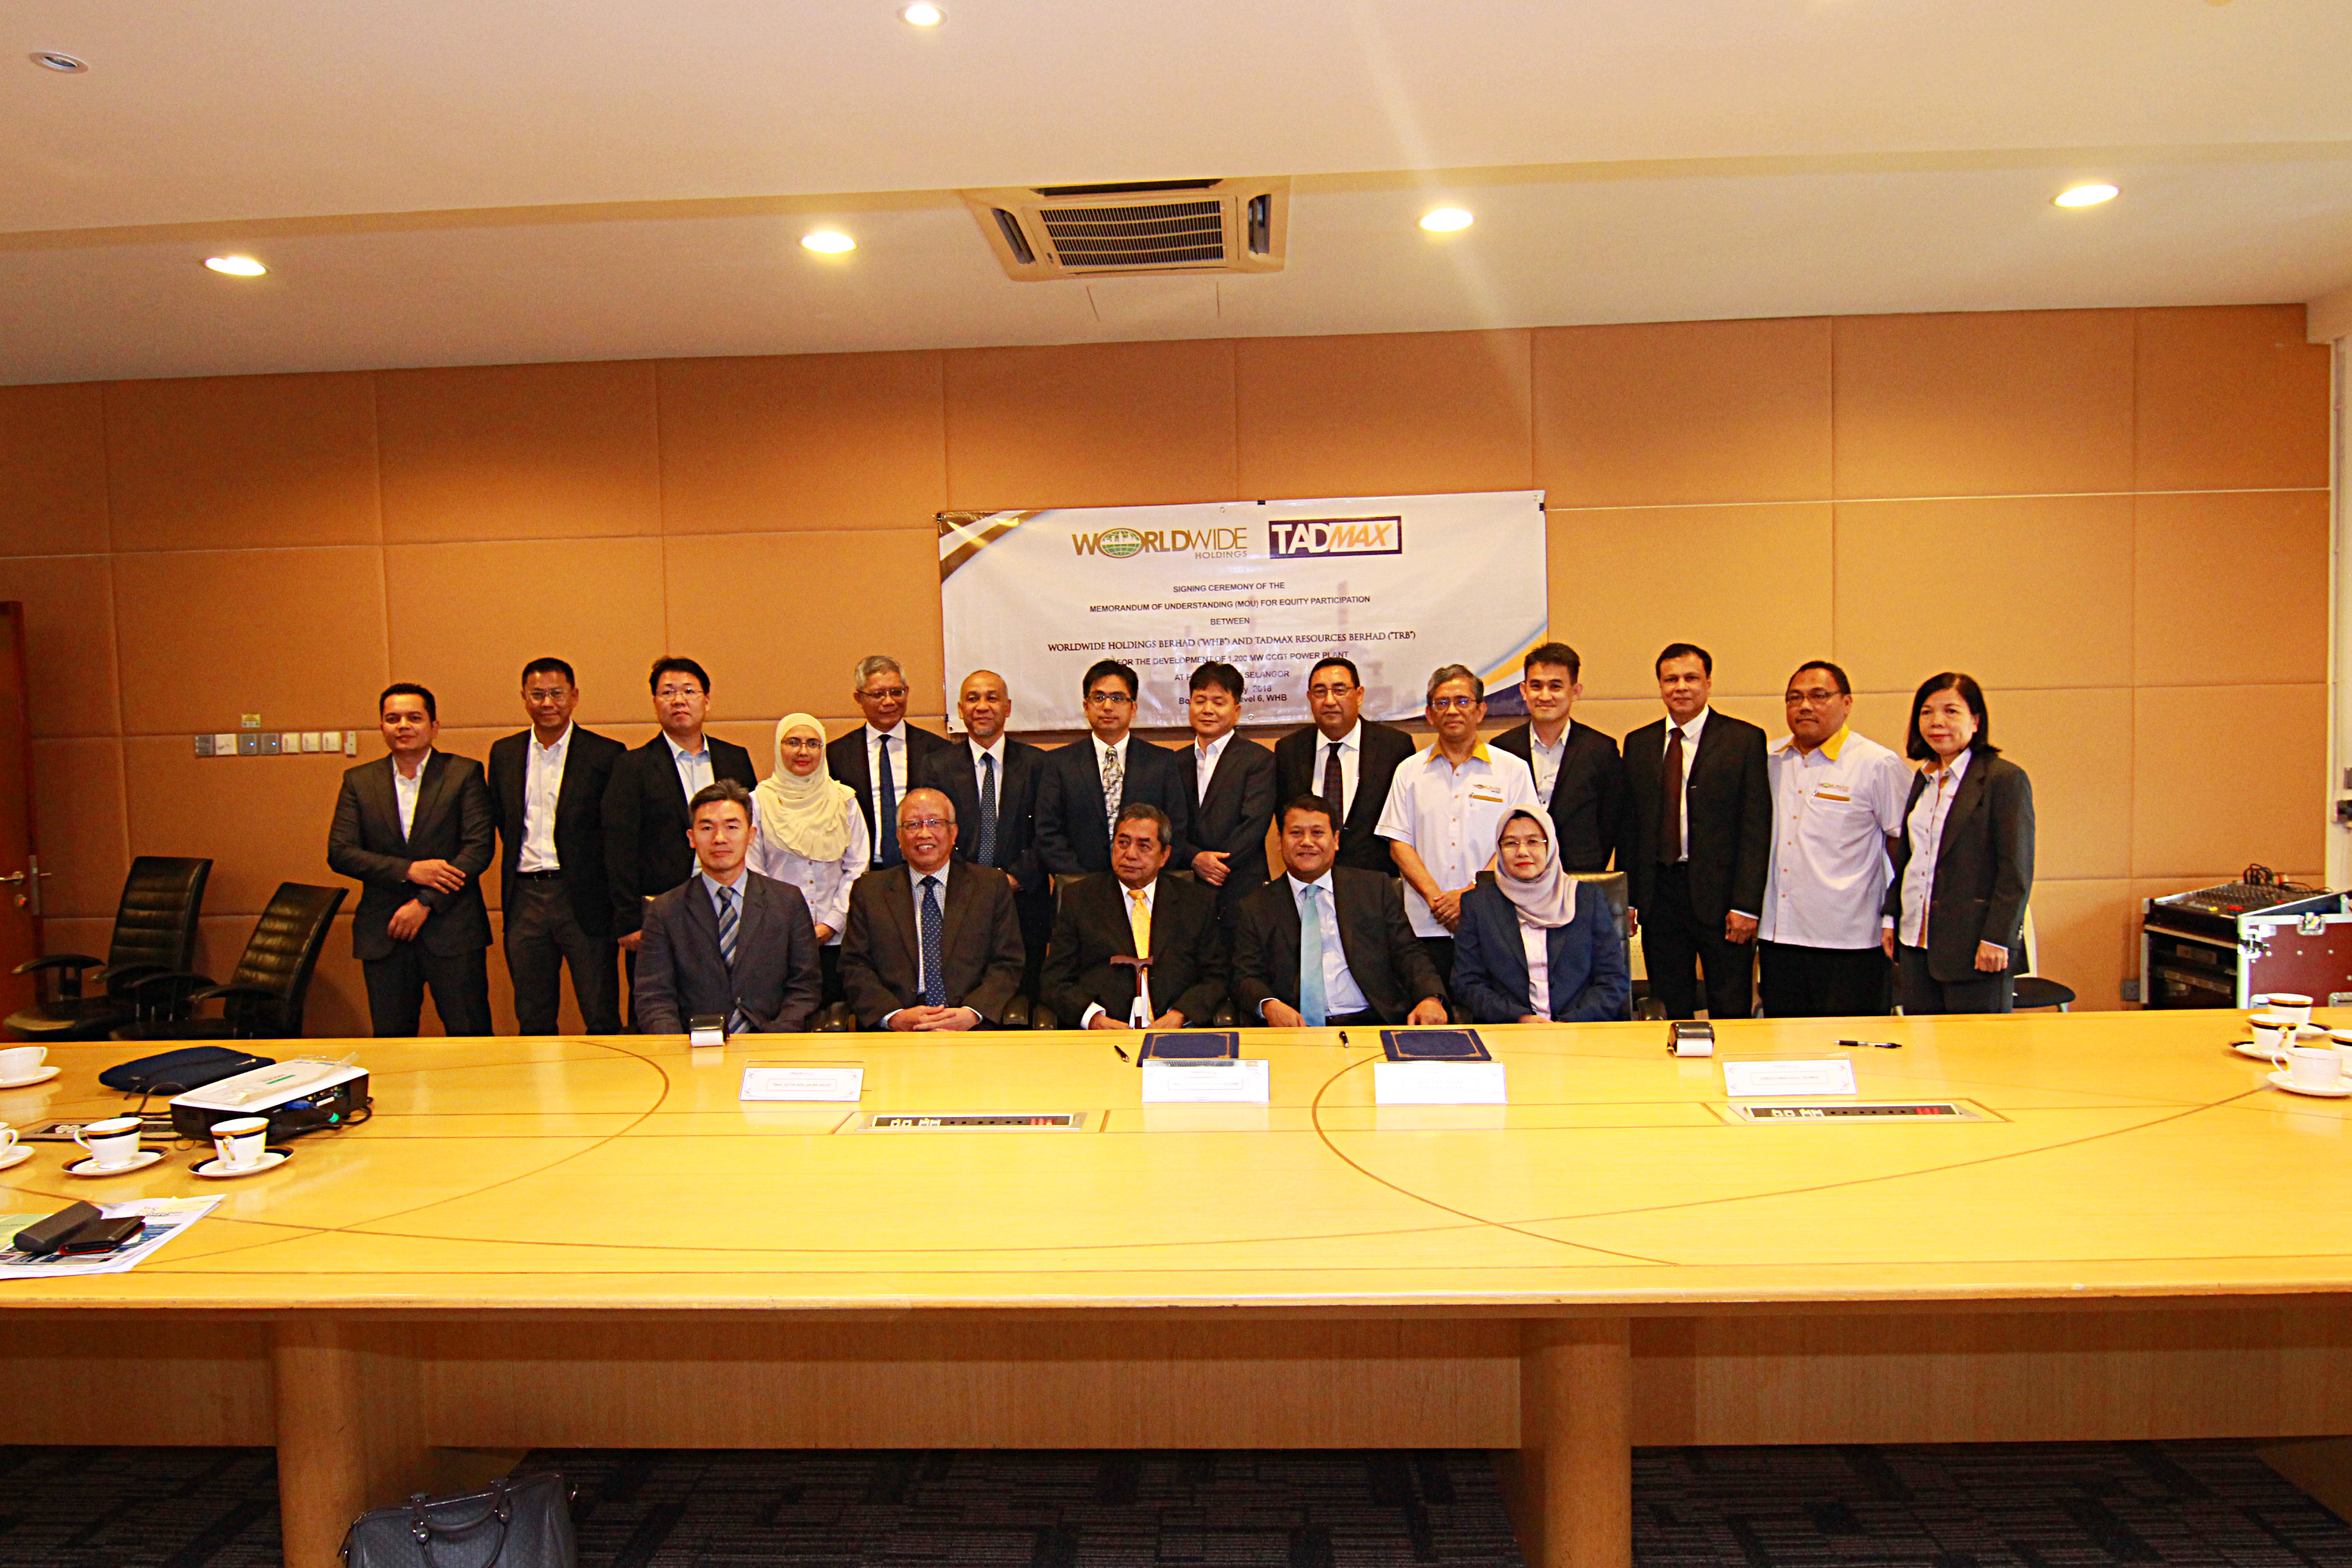 Tadmax, Worldwide team up for power plant project